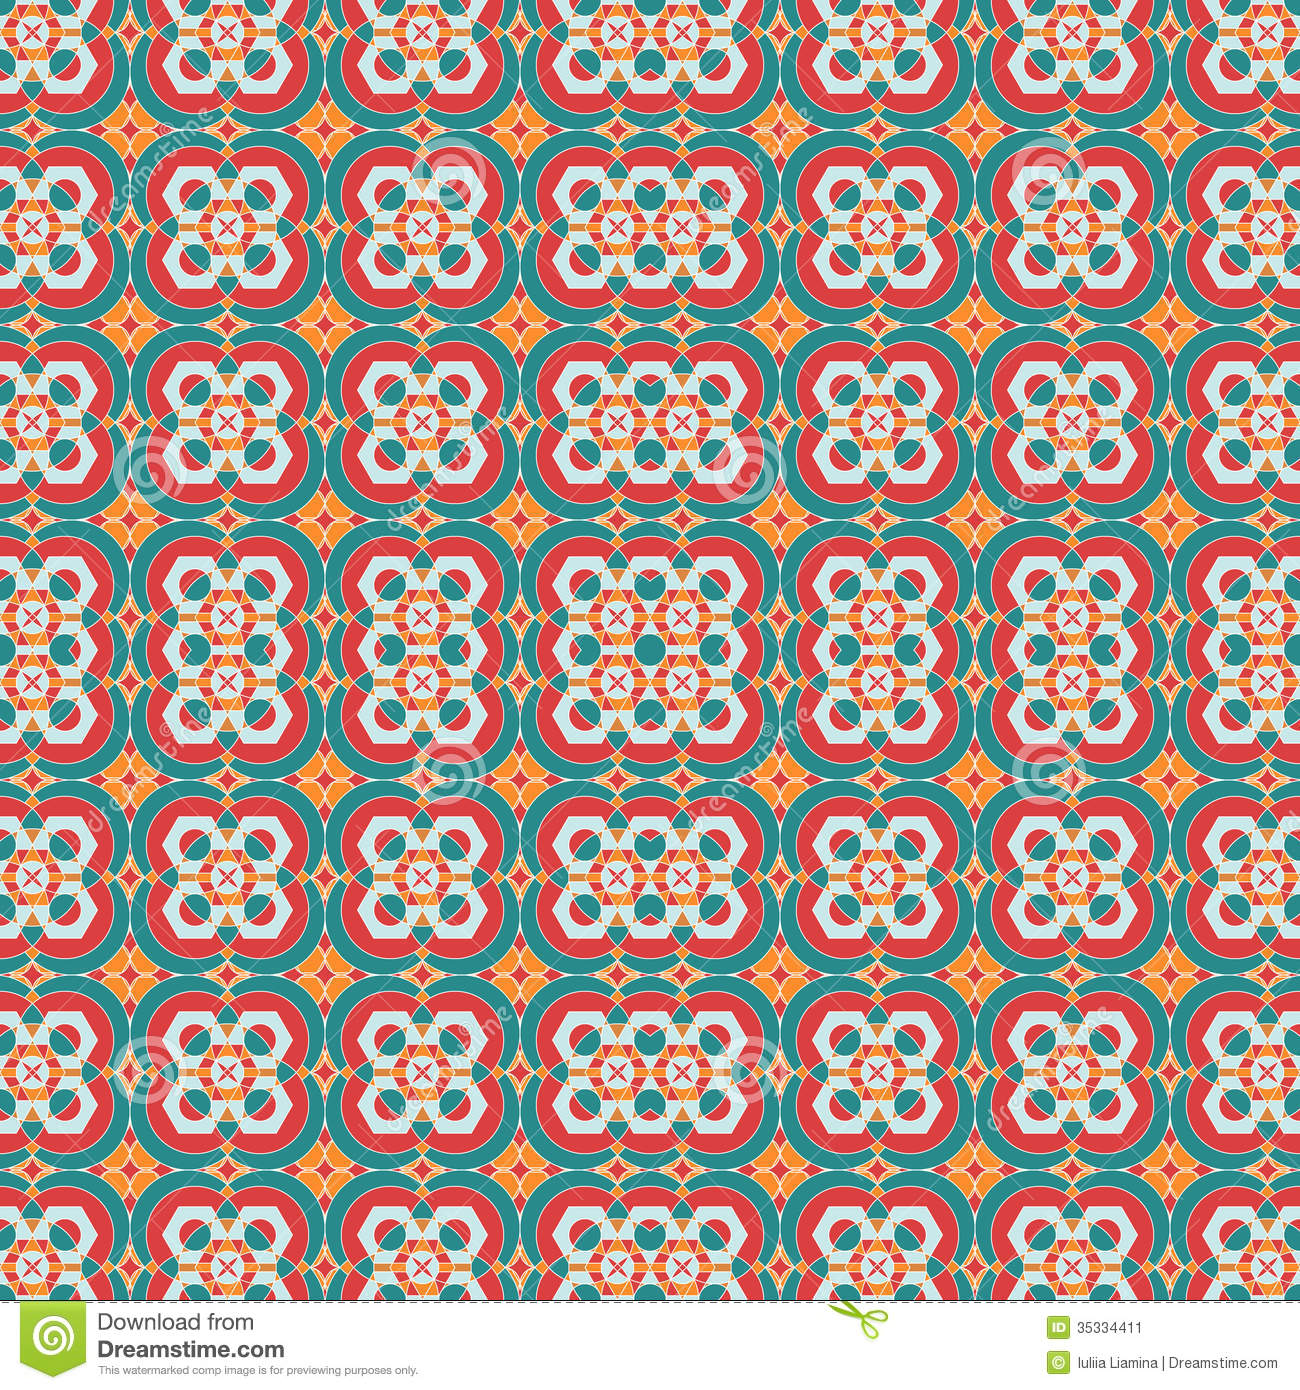 Moroccan geometric pattern royalty free stock photos image 13547078 - Seamless Abstract Background Stock Image 35334411 1300x1390